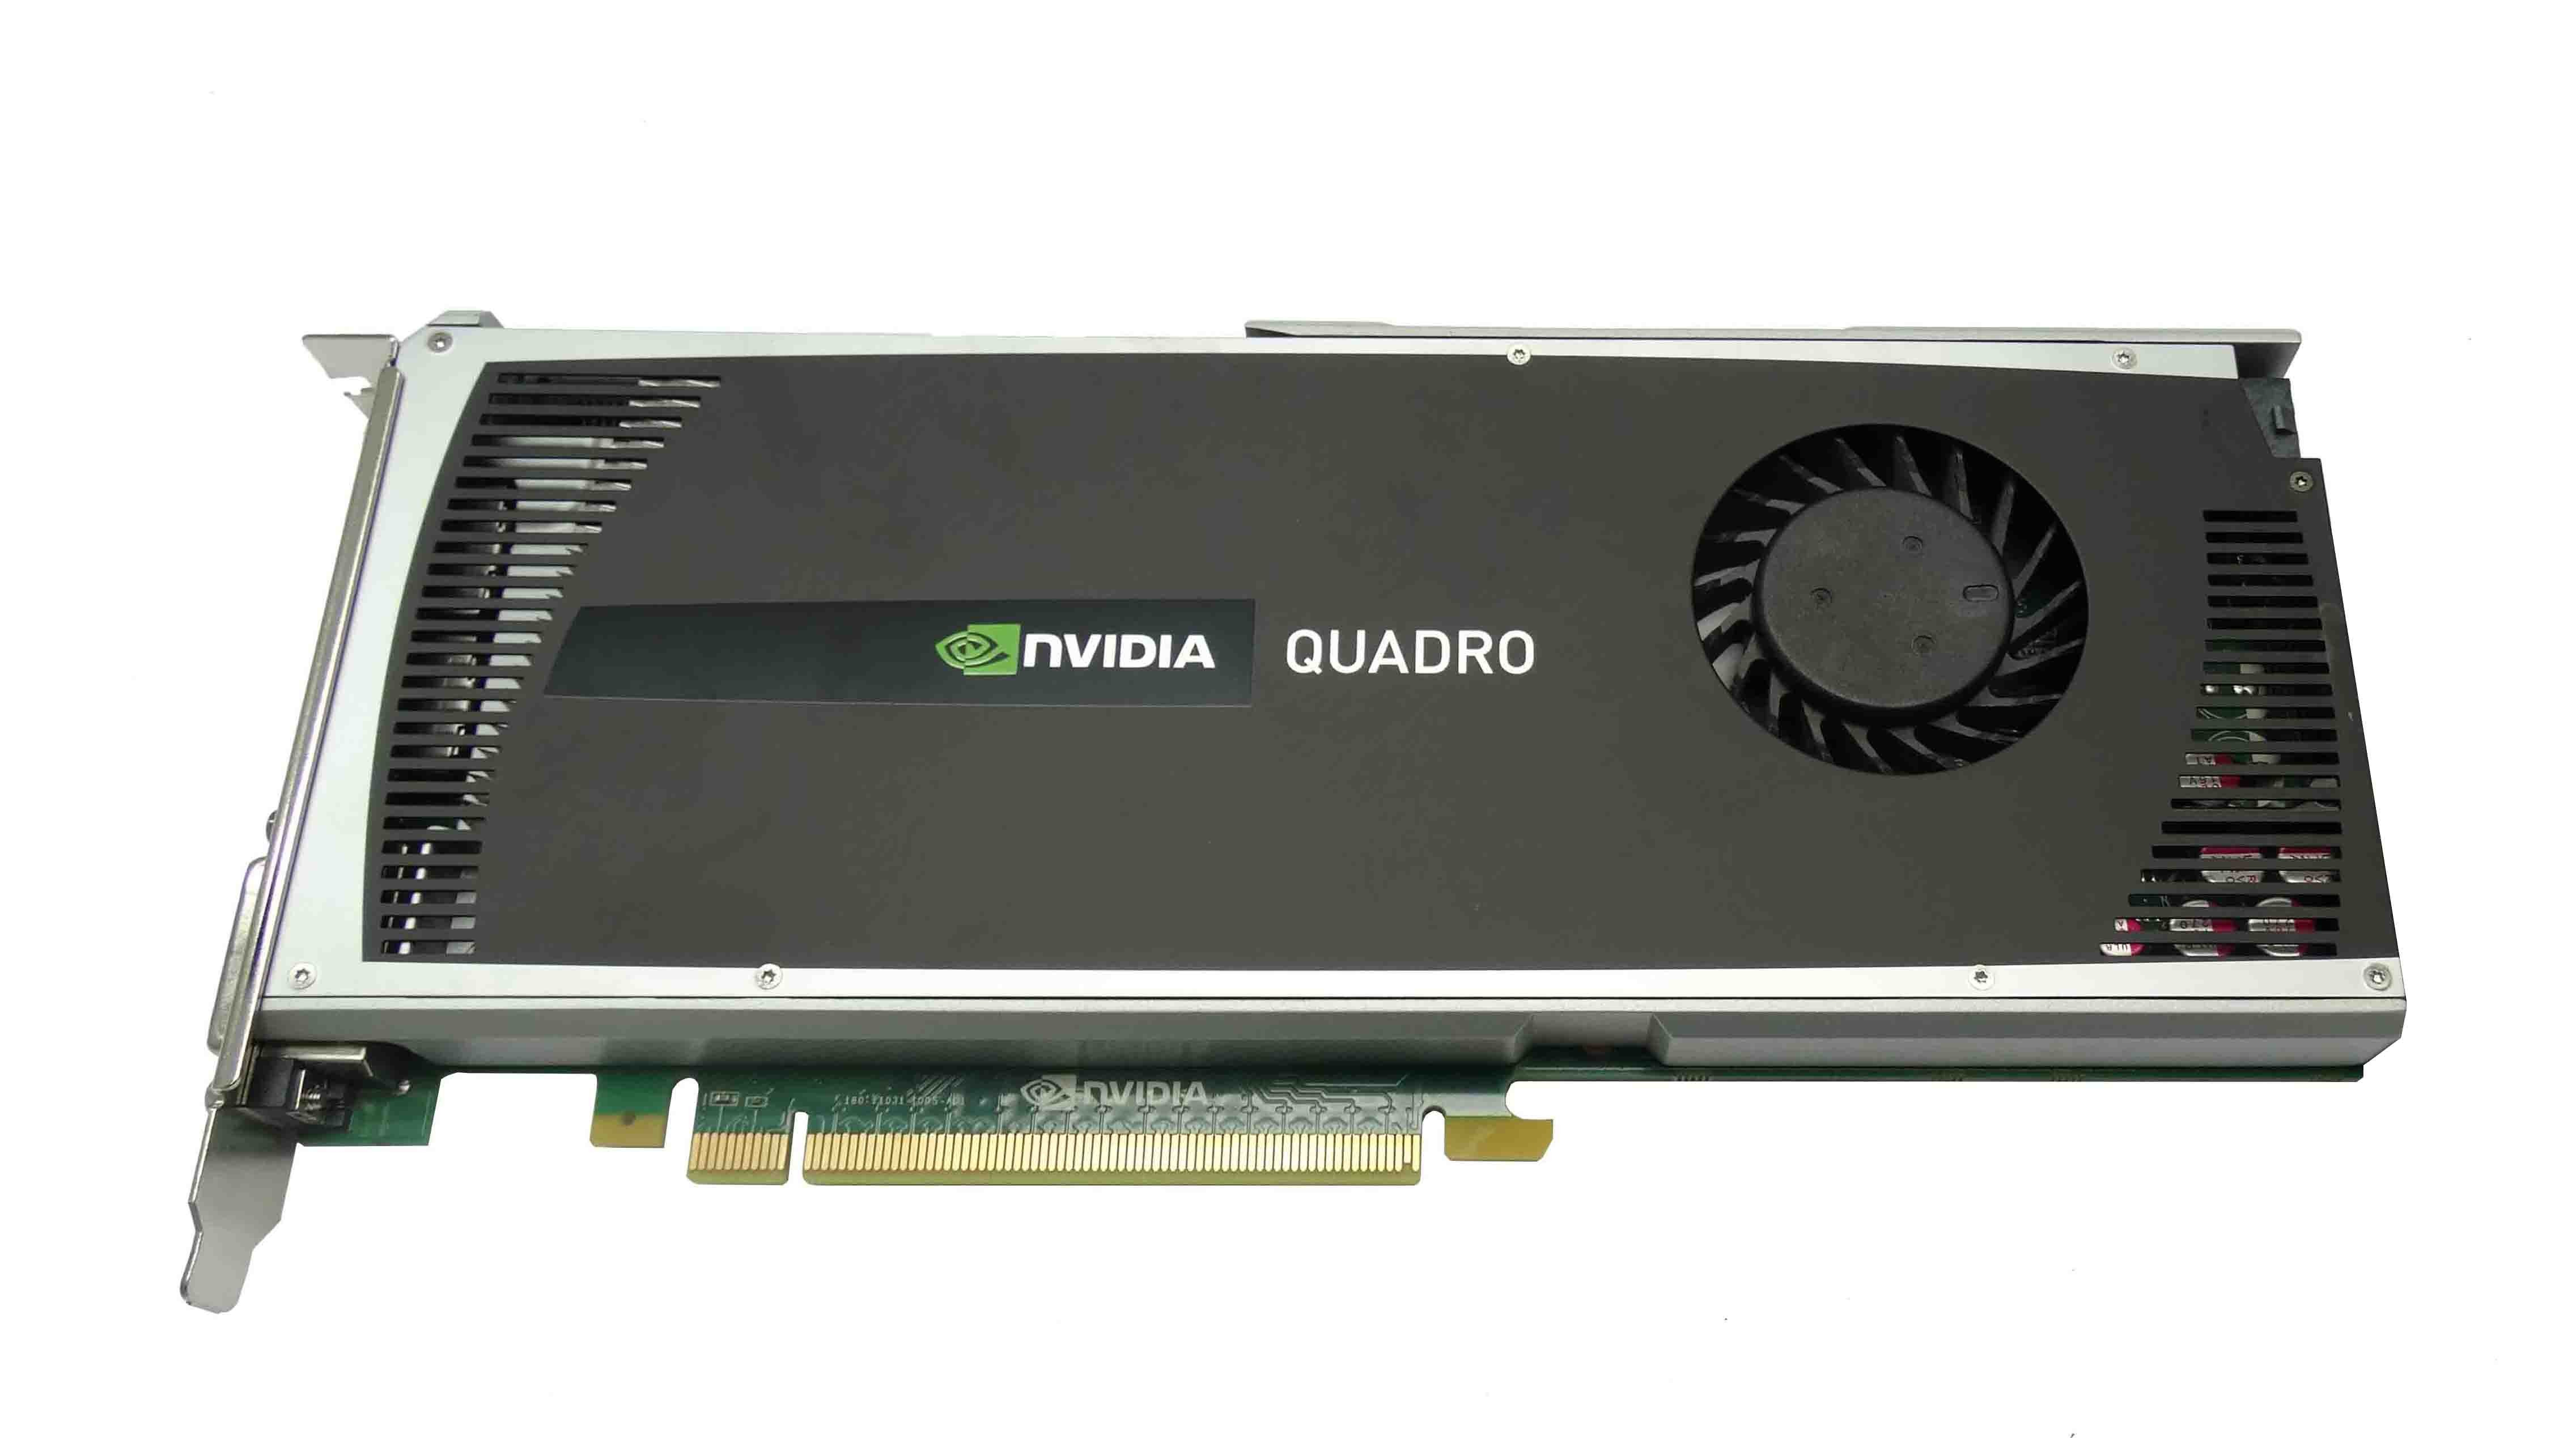 DELL NVIDIA QUADRO 4000 PCI EXPRESS 2 0 X16 GDDR5 DVI-I VIDEO CARD (0731Y3)